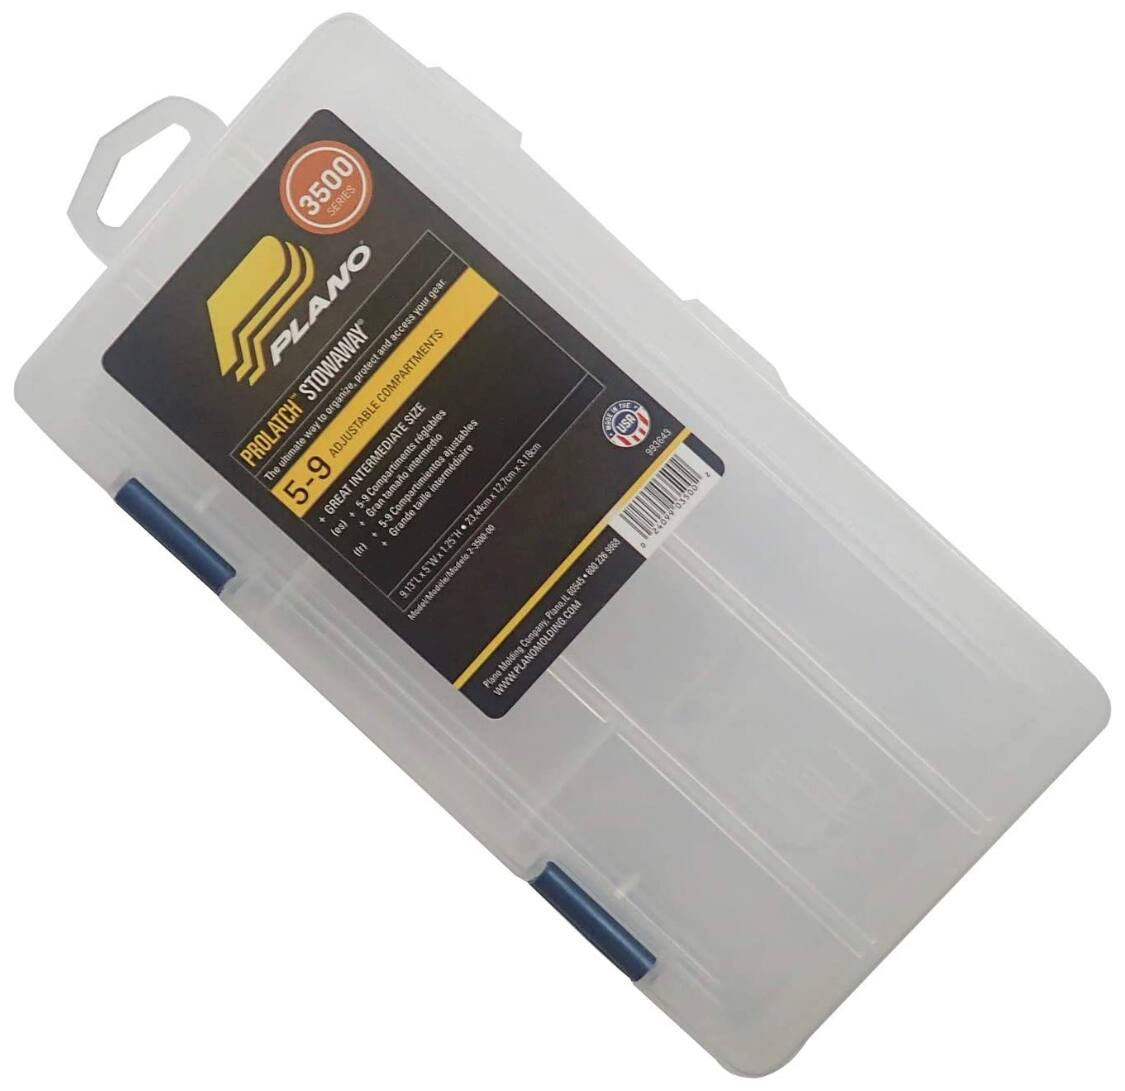 Plano small Stowaway container with dividers $2.48